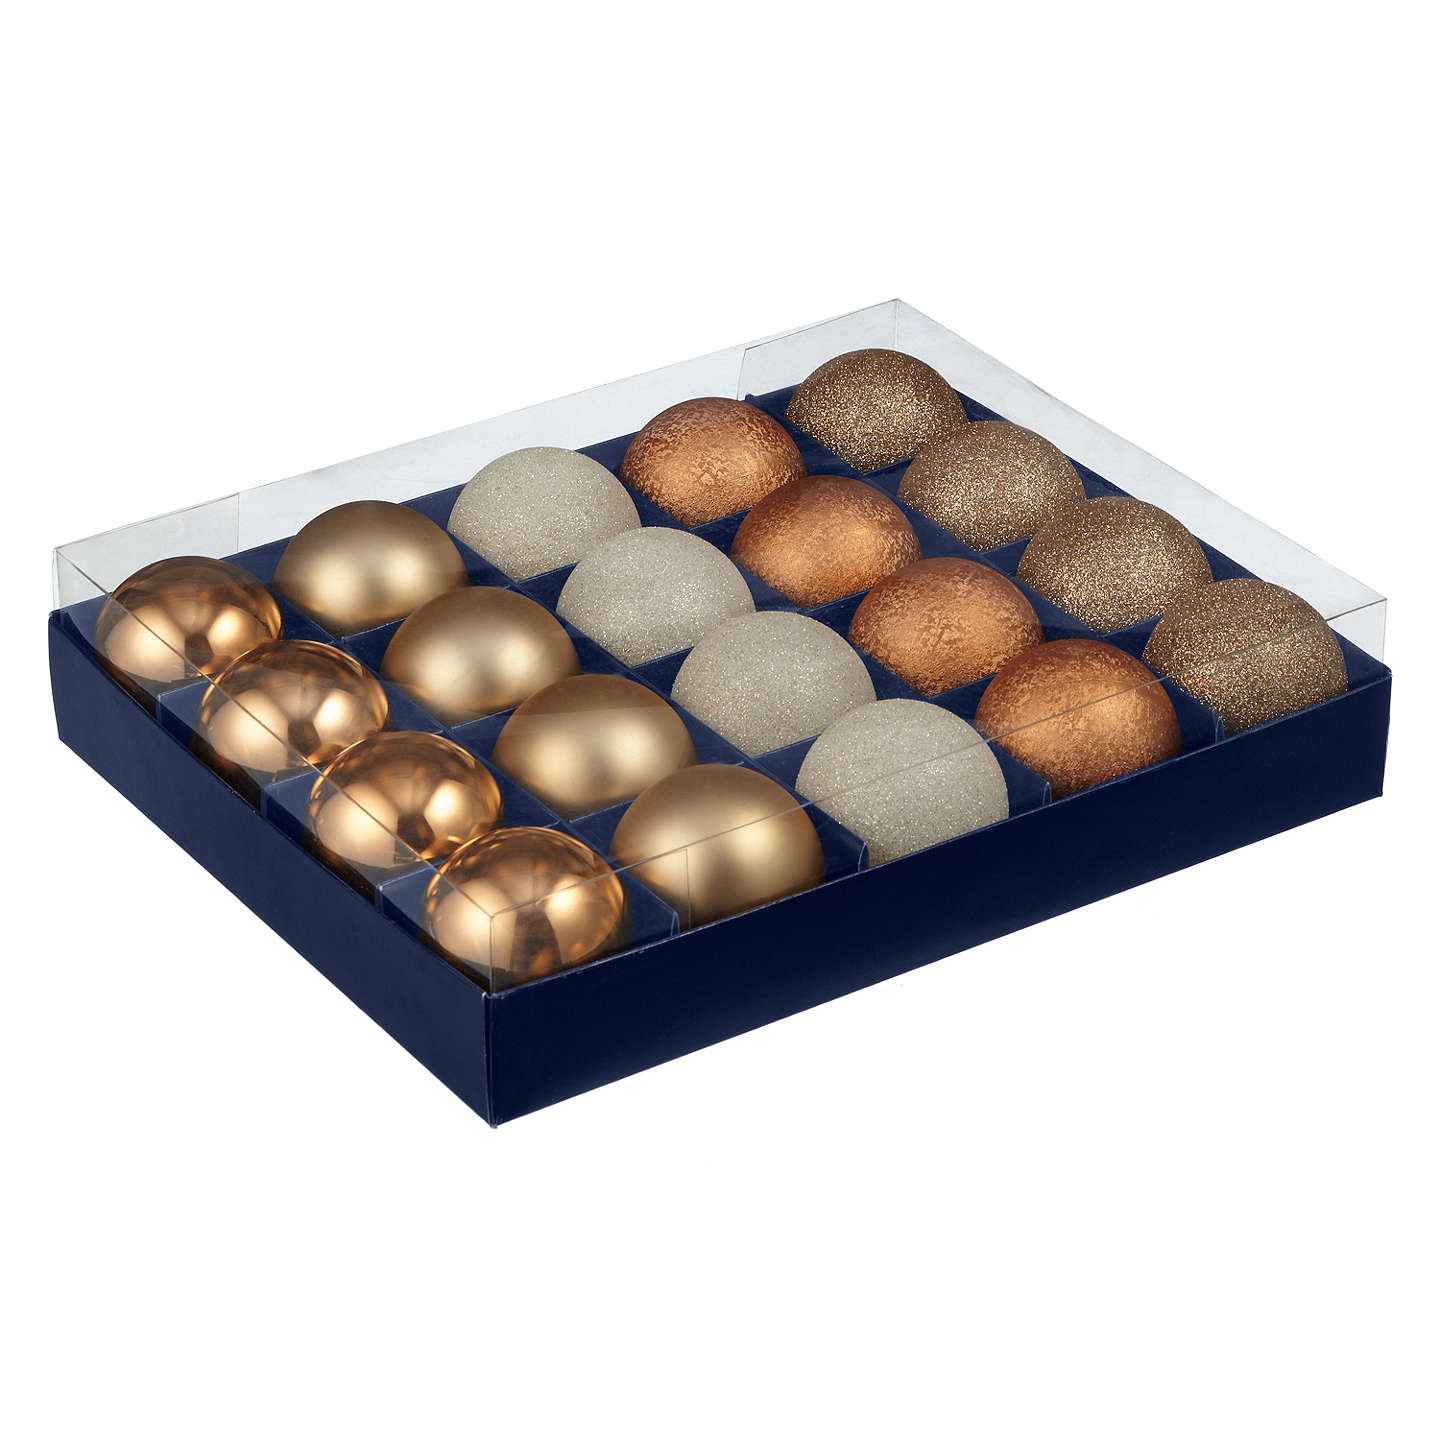 BuyJohn Lewis Helsinki Shatterproof Baubles, Tray of 20 Online at johnlewis.com